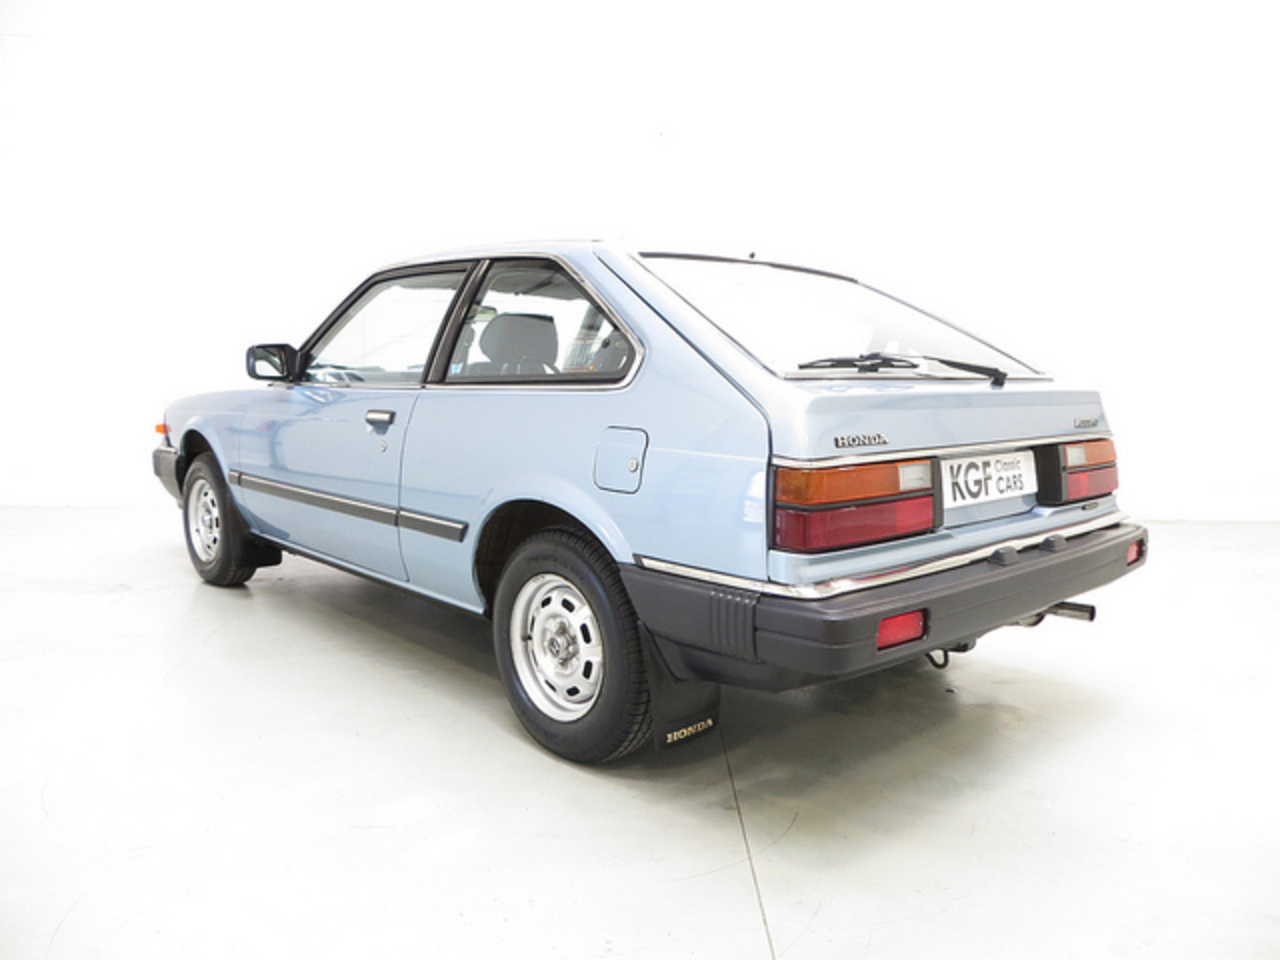 1983 Honda Accord DX Auto | Flickr - Photo Sharing!